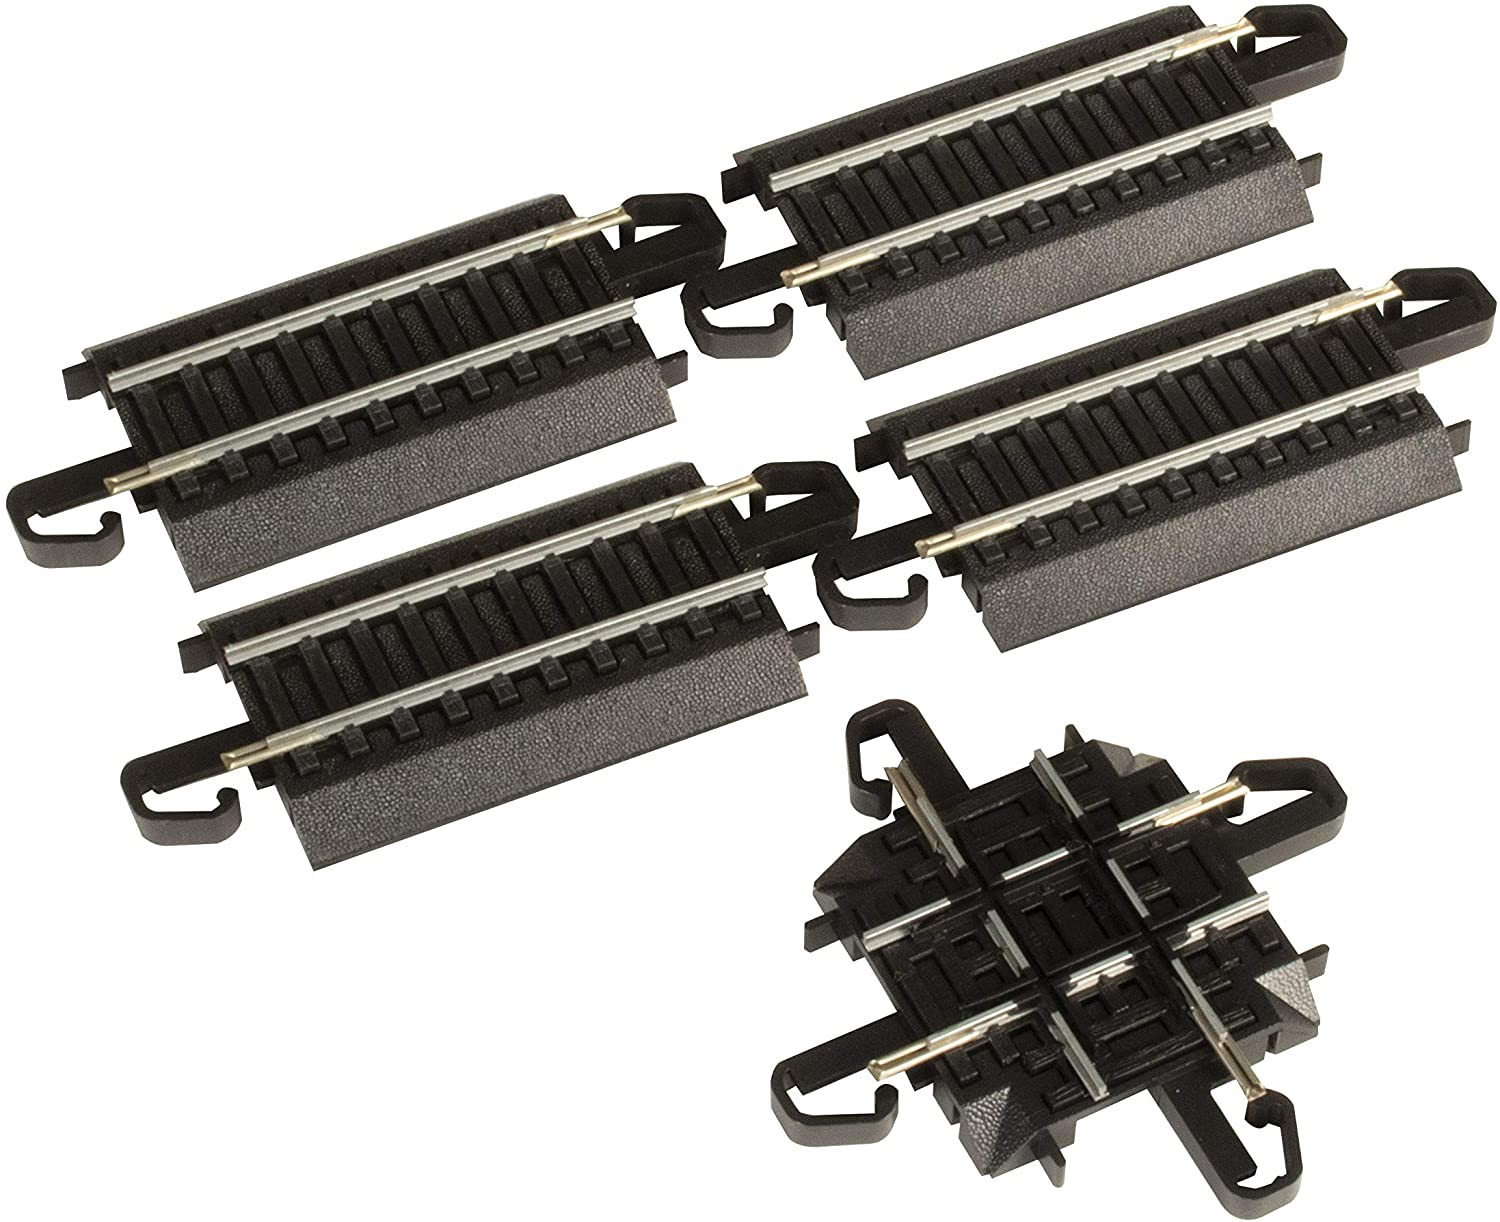 Bachmann Trains - Snap-Fit E-Z TRACK 90 DEGREE CROSSING (1/card) - STEEL ALLOY Rail With Black Roadbed - HO Scale